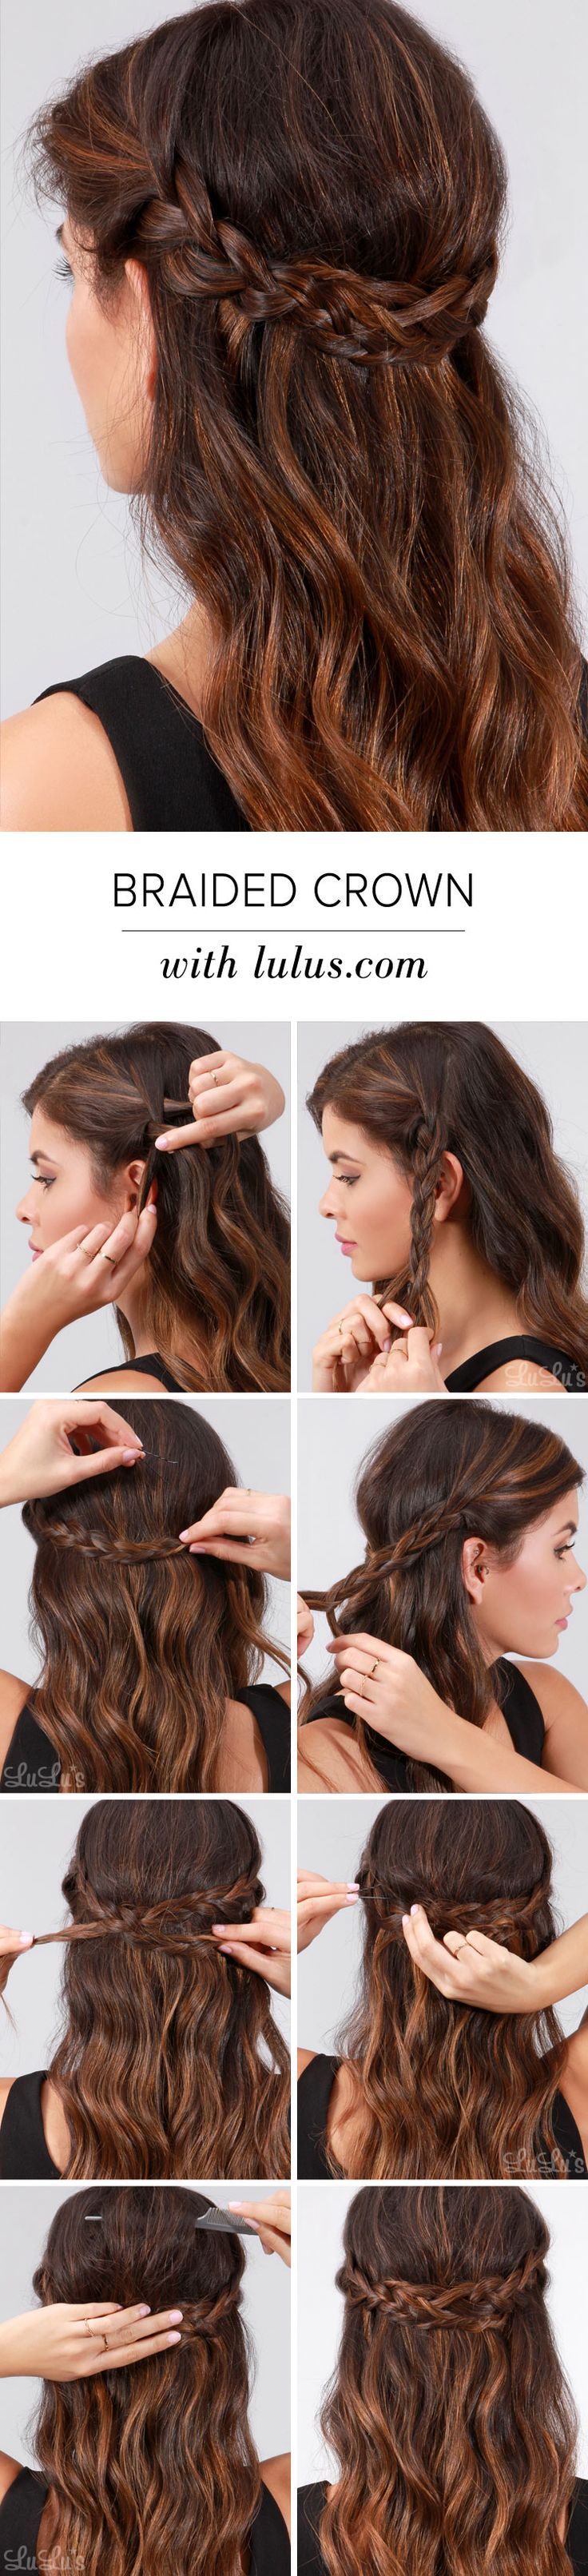 Astounding 1000 Ideas About Simple Hairstyles On Pinterest Hairstyle App Short Hairstyles For Black Women Fulllsitofus